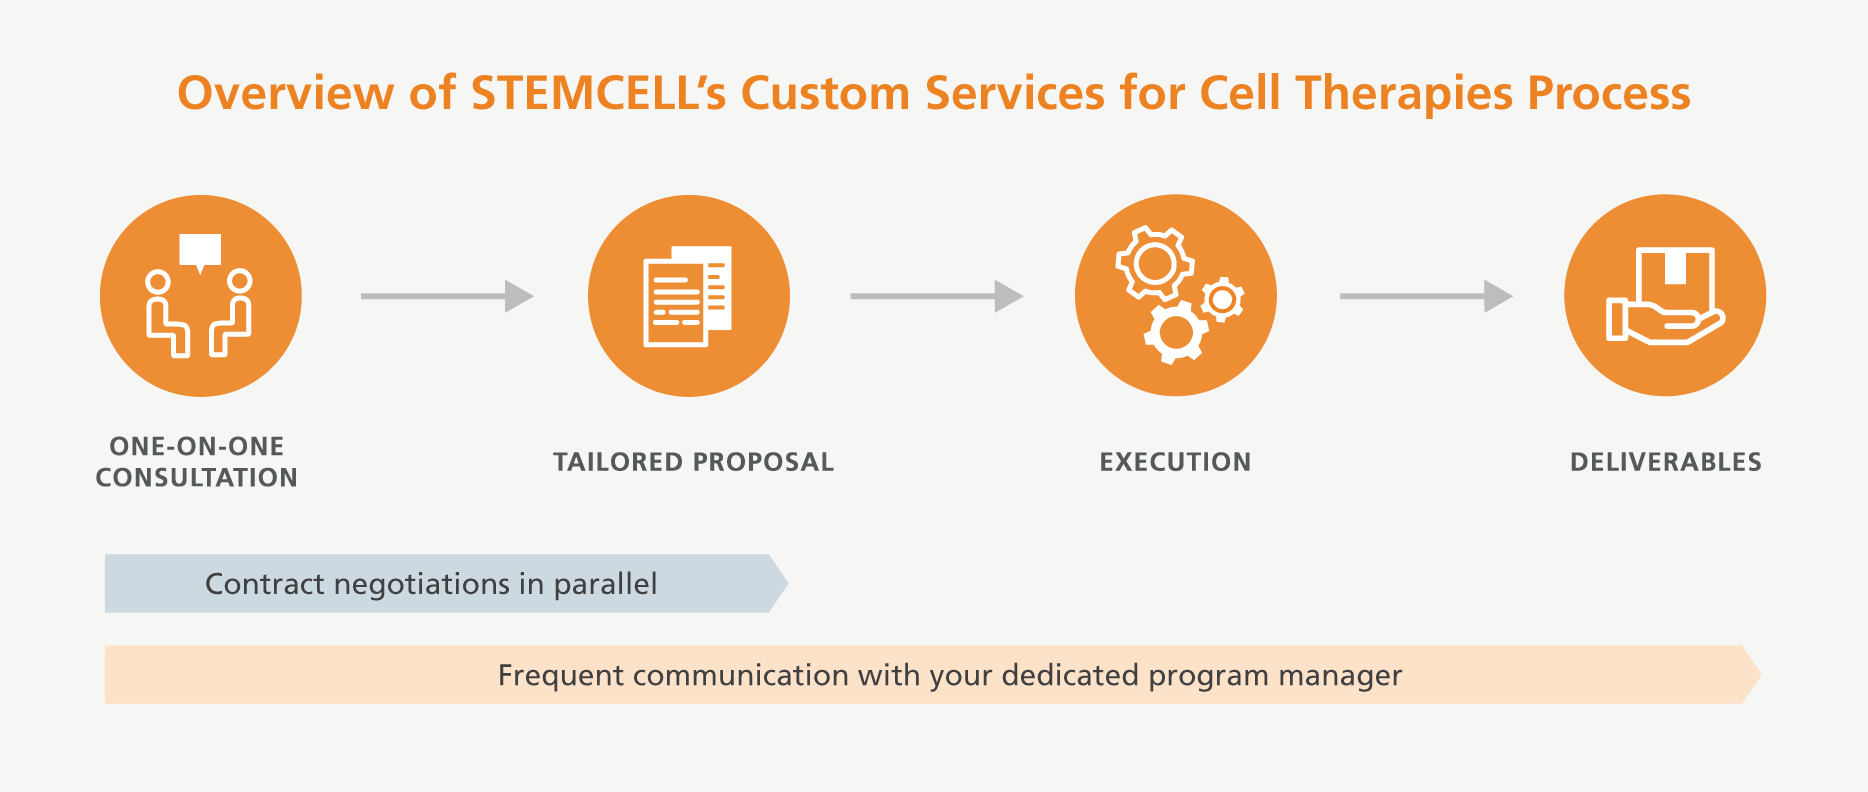 Process for working with STEMCELL's Custom Services for Cell Therapies to achieve custom or complex compliance requirements.